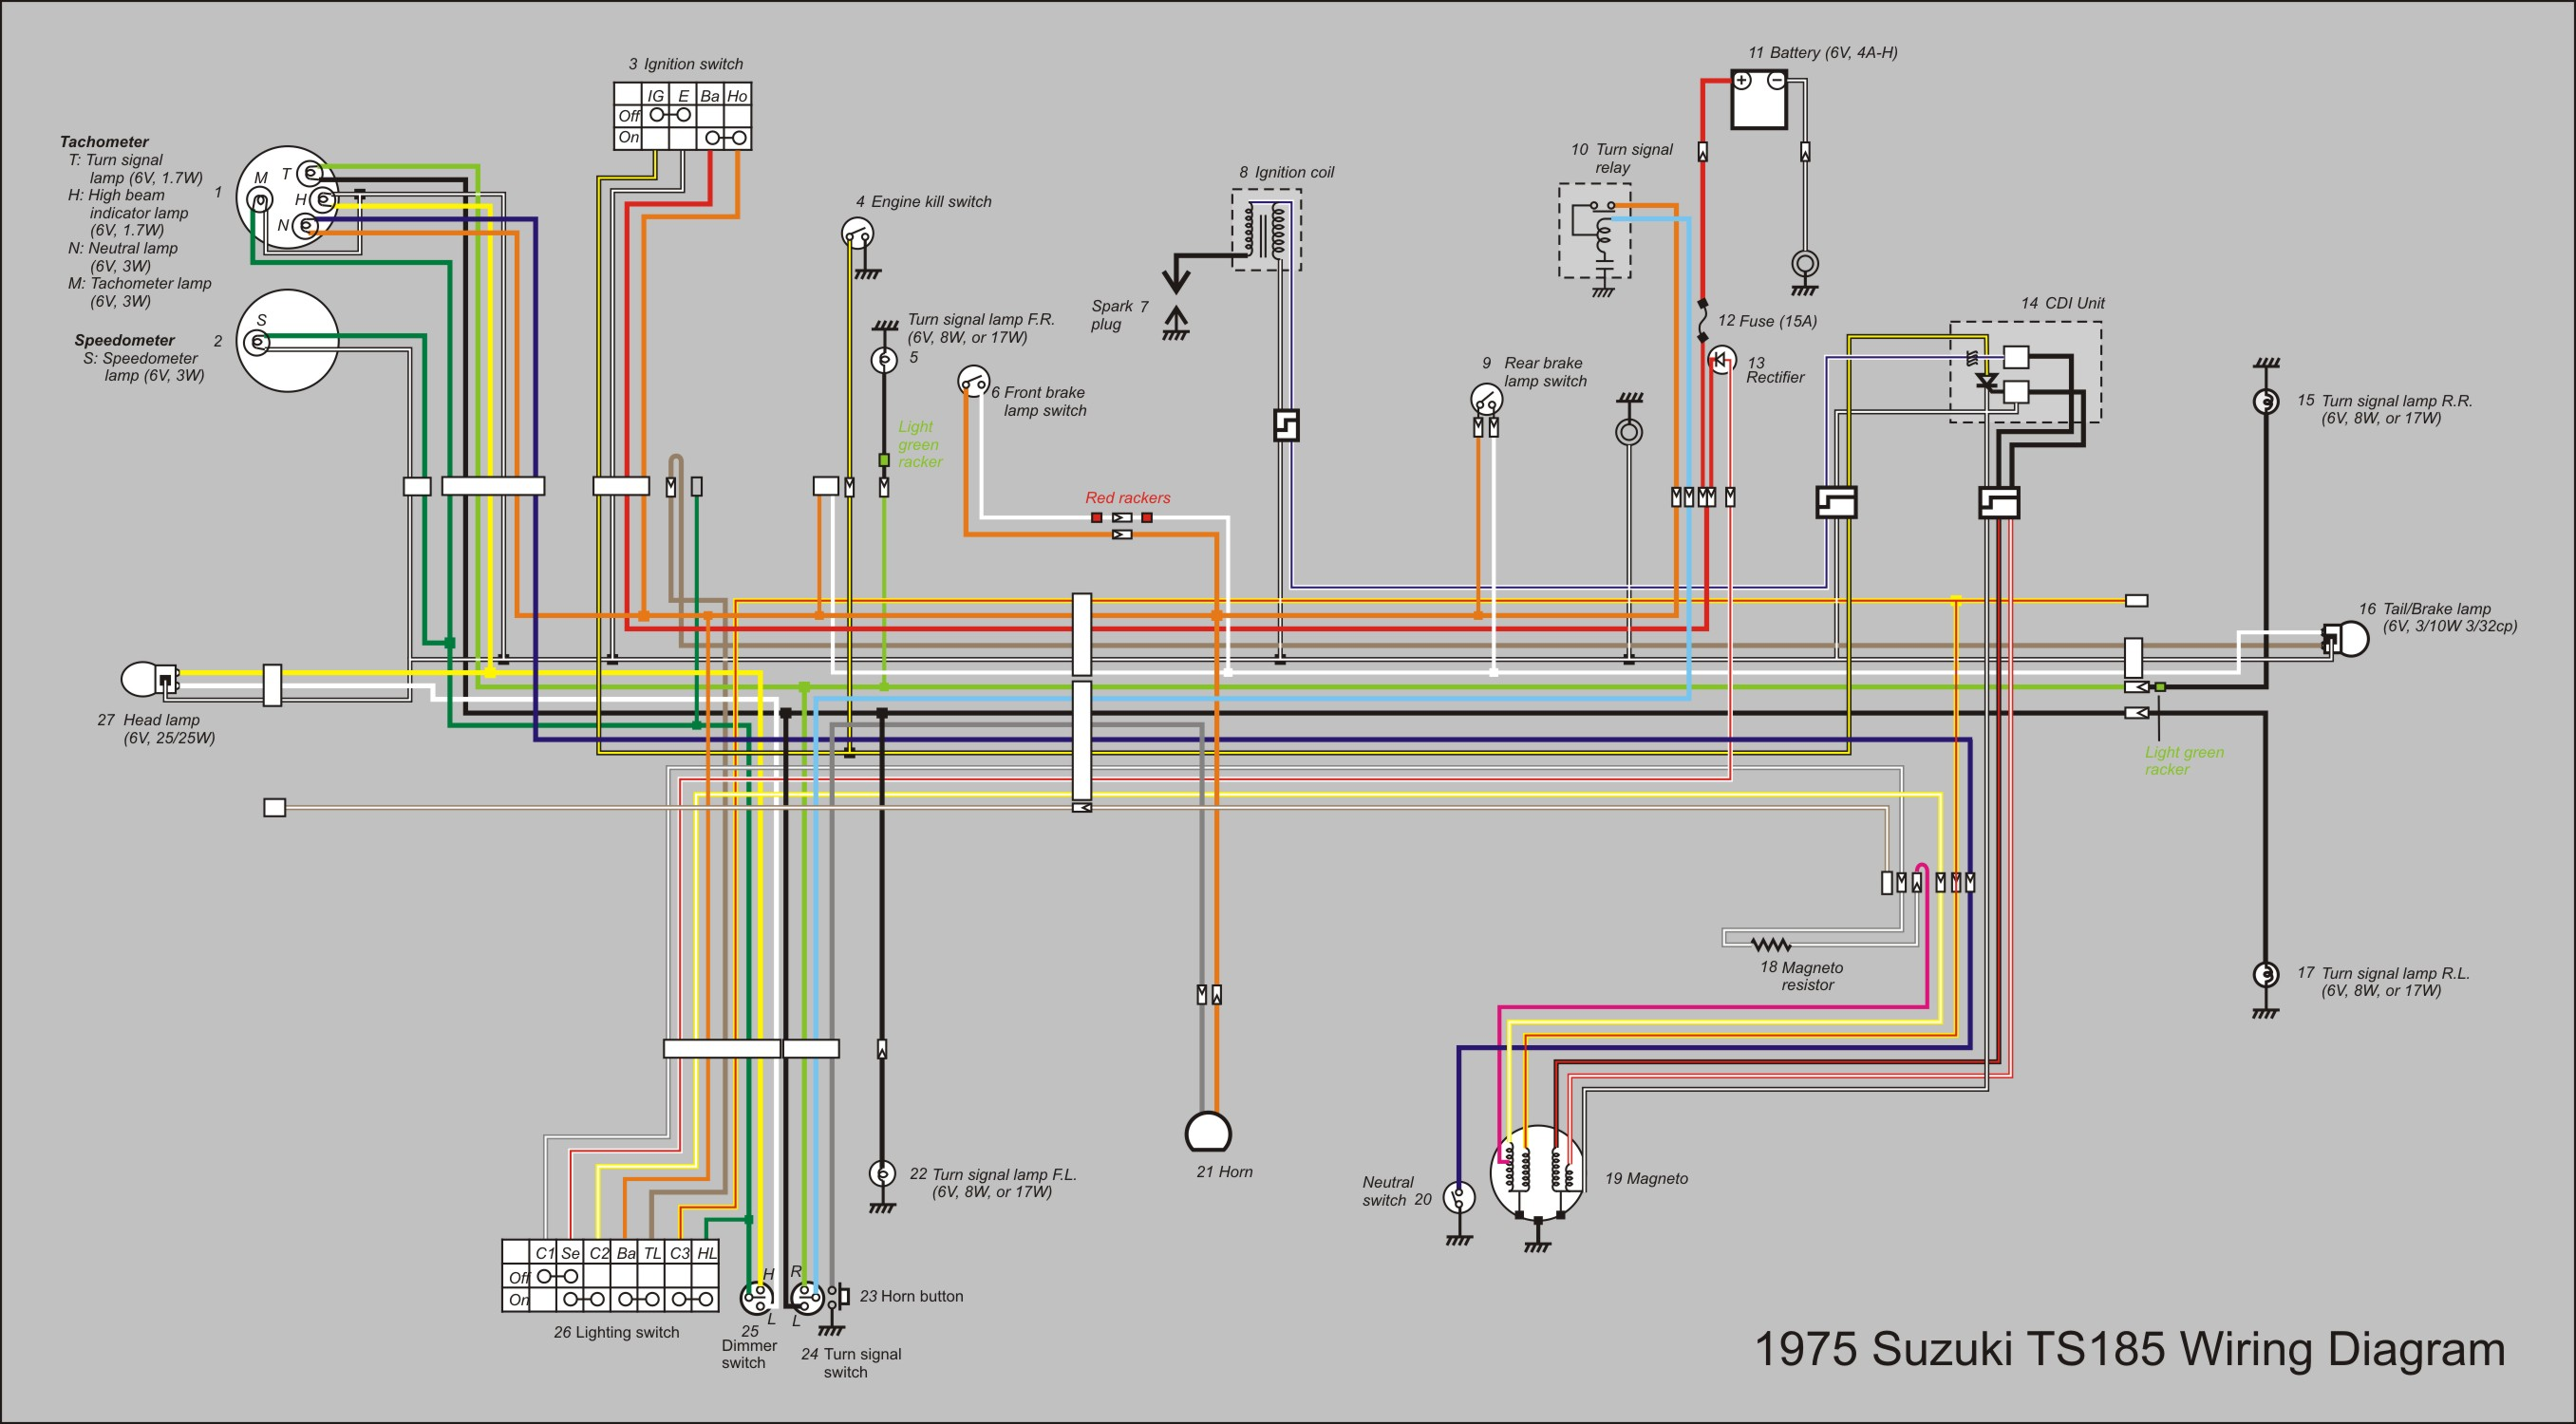 TS185_Wiring_Diagram_new file ts185 wiring diagram new jpg wikimedia commons find wiring diagram for 87 ford f 150 at honlapkeszites.co